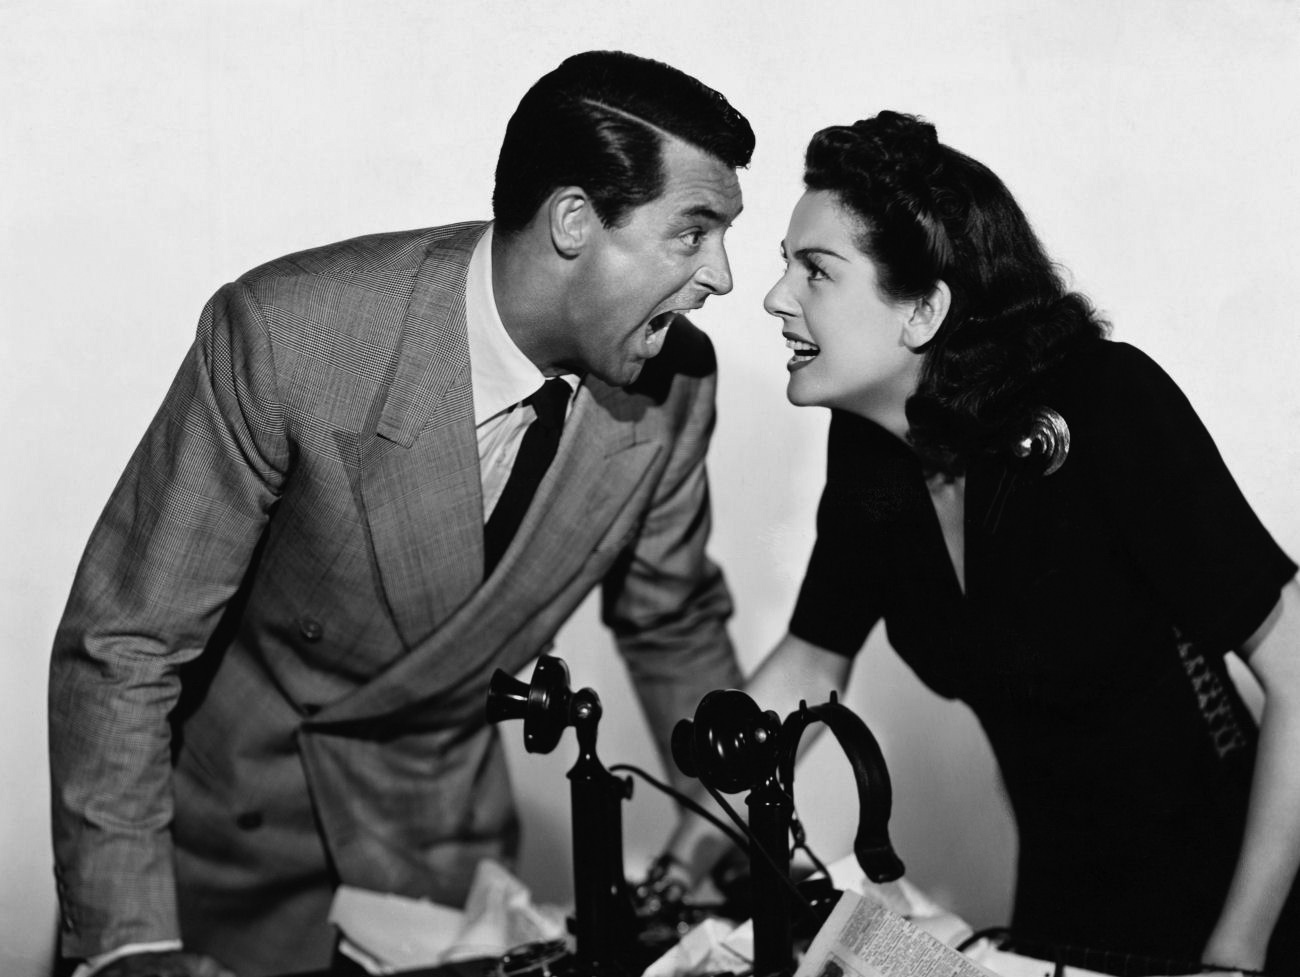 openculture.com||http://www.openculture.com/2013/06/watch_ihis_girl_fridayi_howard_hawks_classic_screwball_comedy_starring_cary_grant_free_online.html